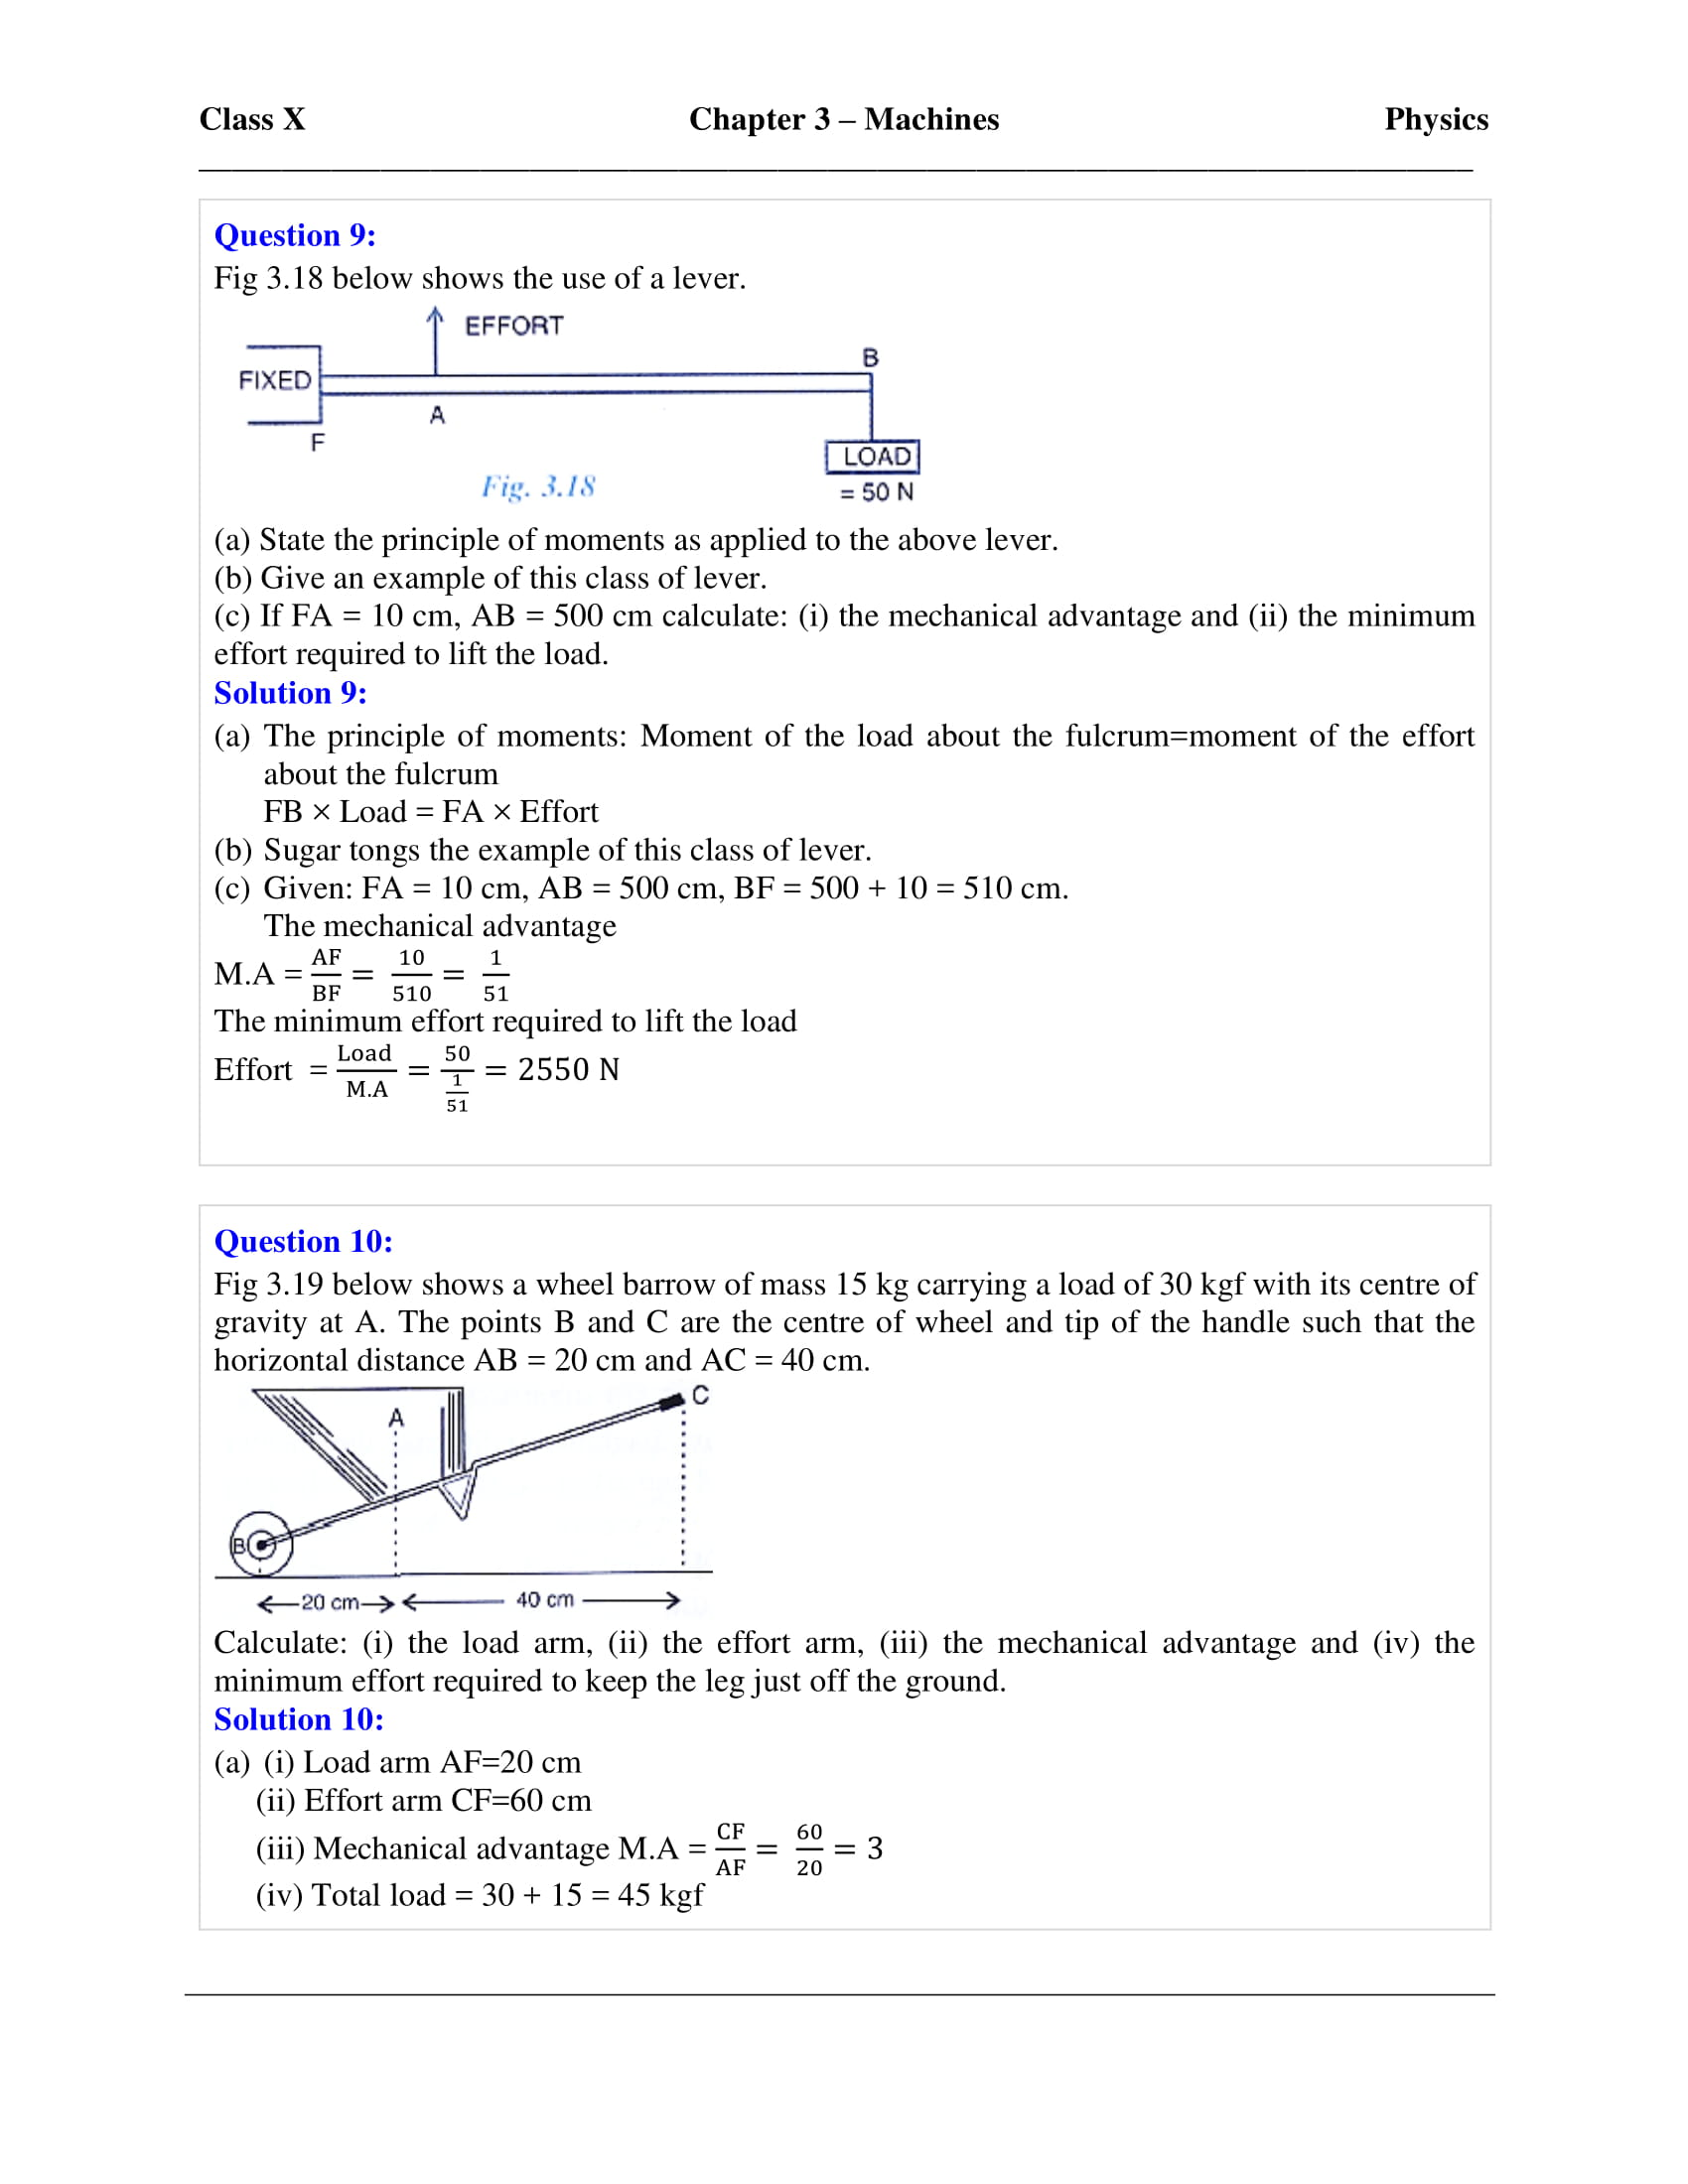 icse-selina-physics-solutions-class-10-chapter-3-machines-19